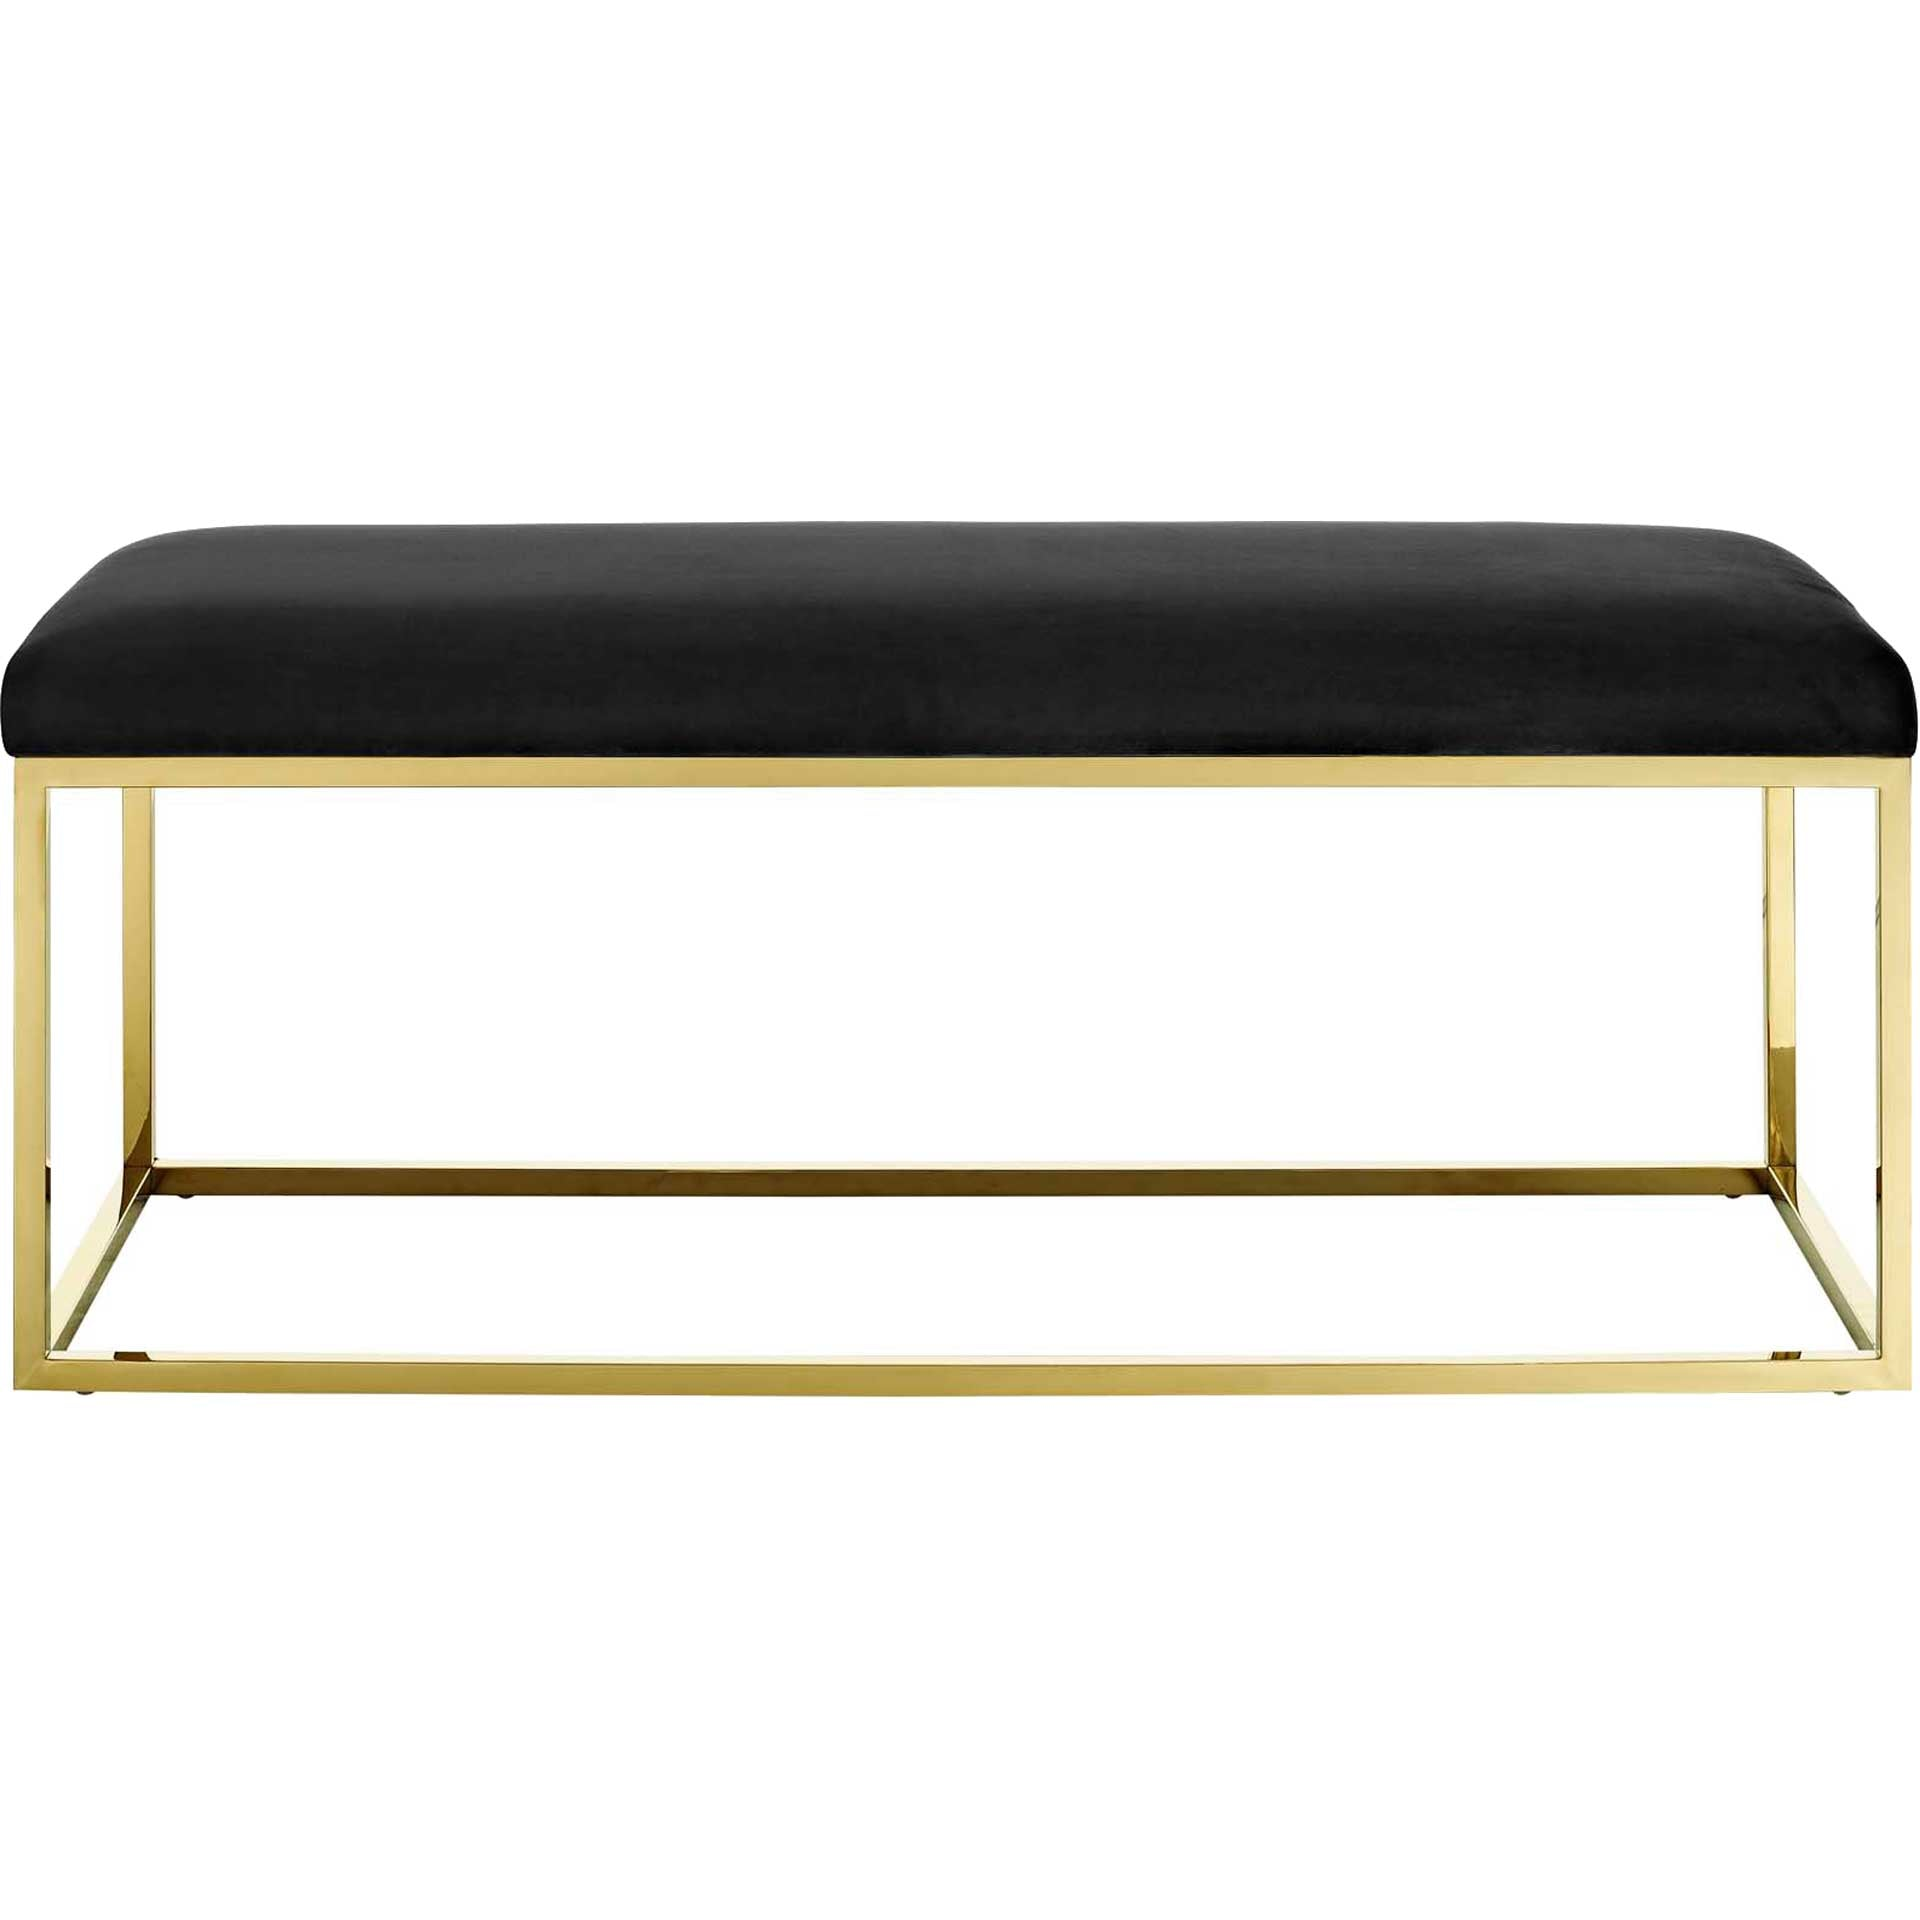 Alden Fabric Bench Gold/Black